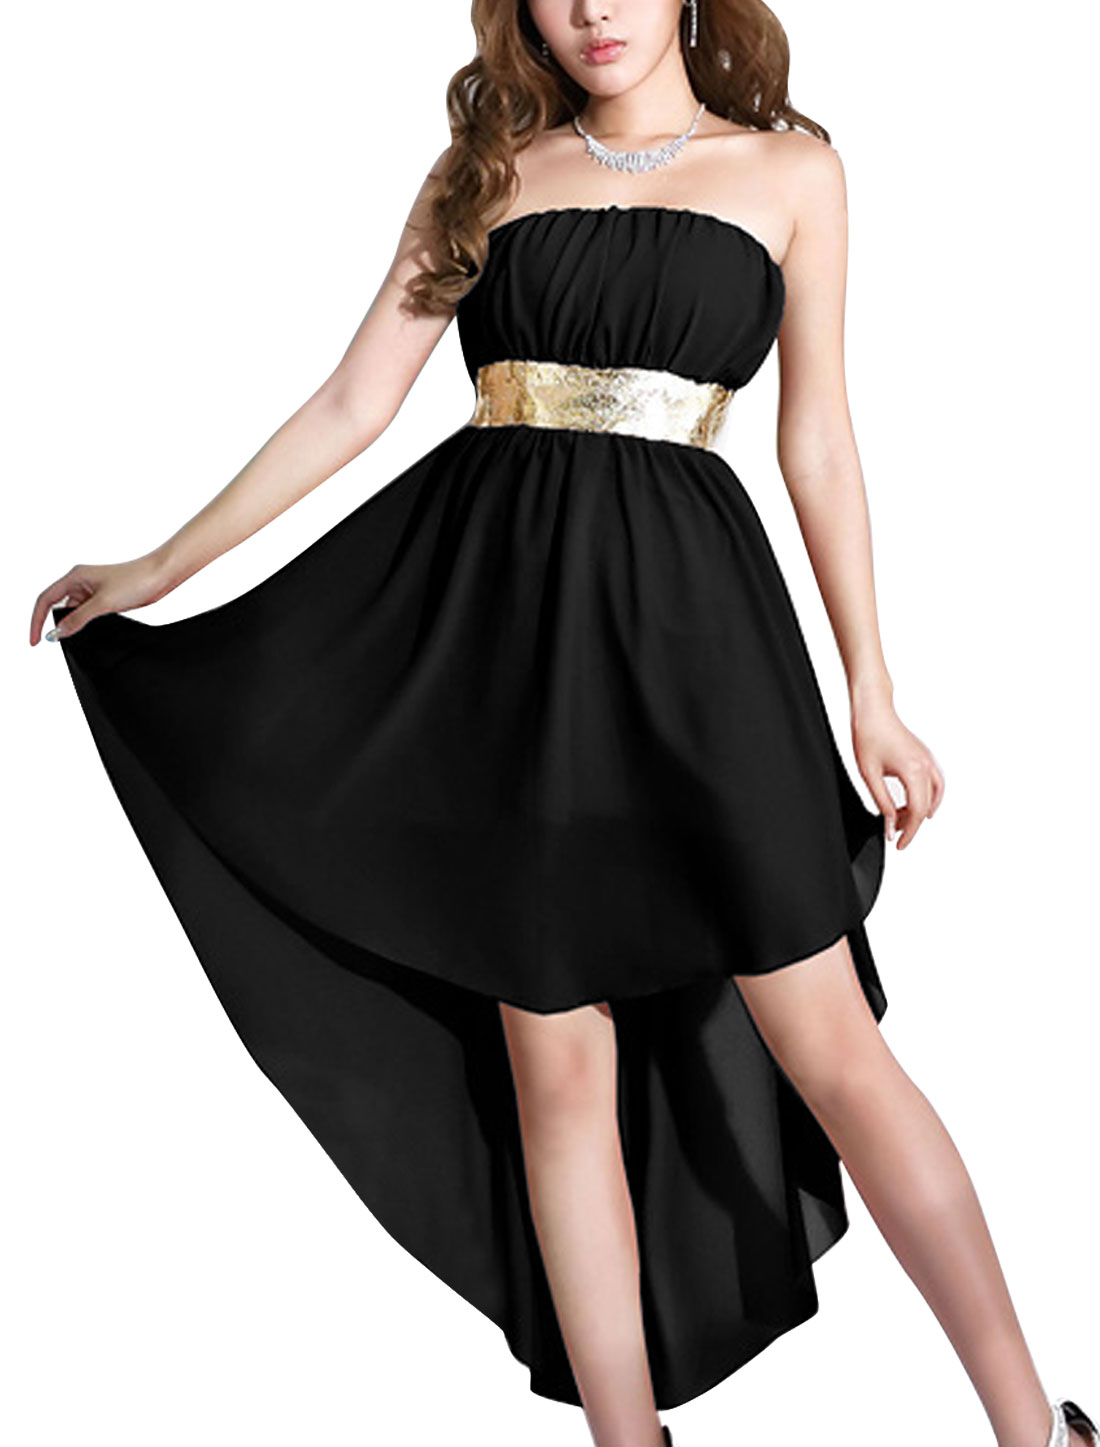 Lady Panel Design Strapless Low High Hem Blouson Dress Black L